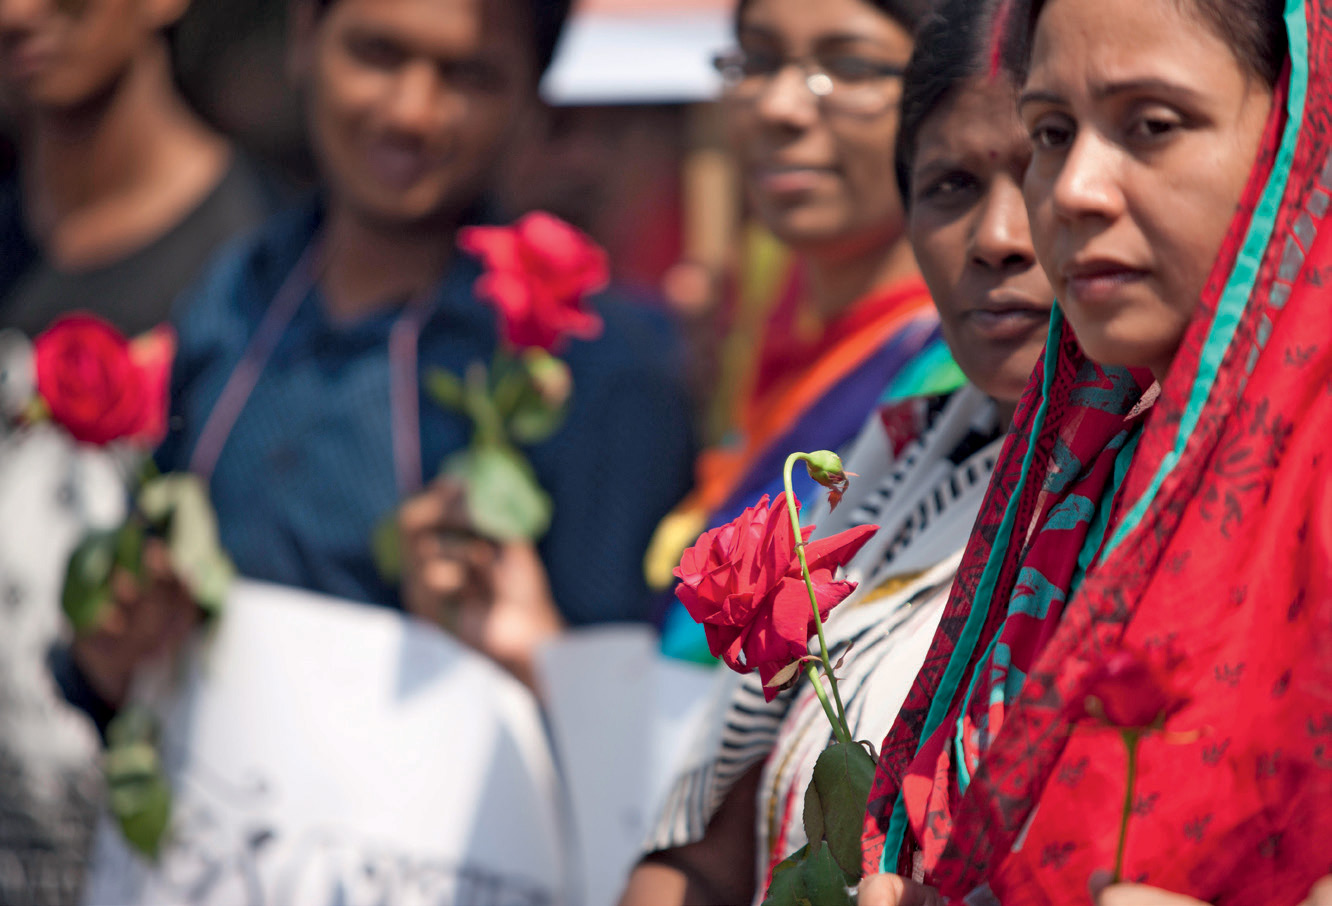 Mourners remember Avijit Roy, murdered in March. Just weeks later, Washiqur Rahman, a blogger known for his atheist views, was also killed in Dhaka.